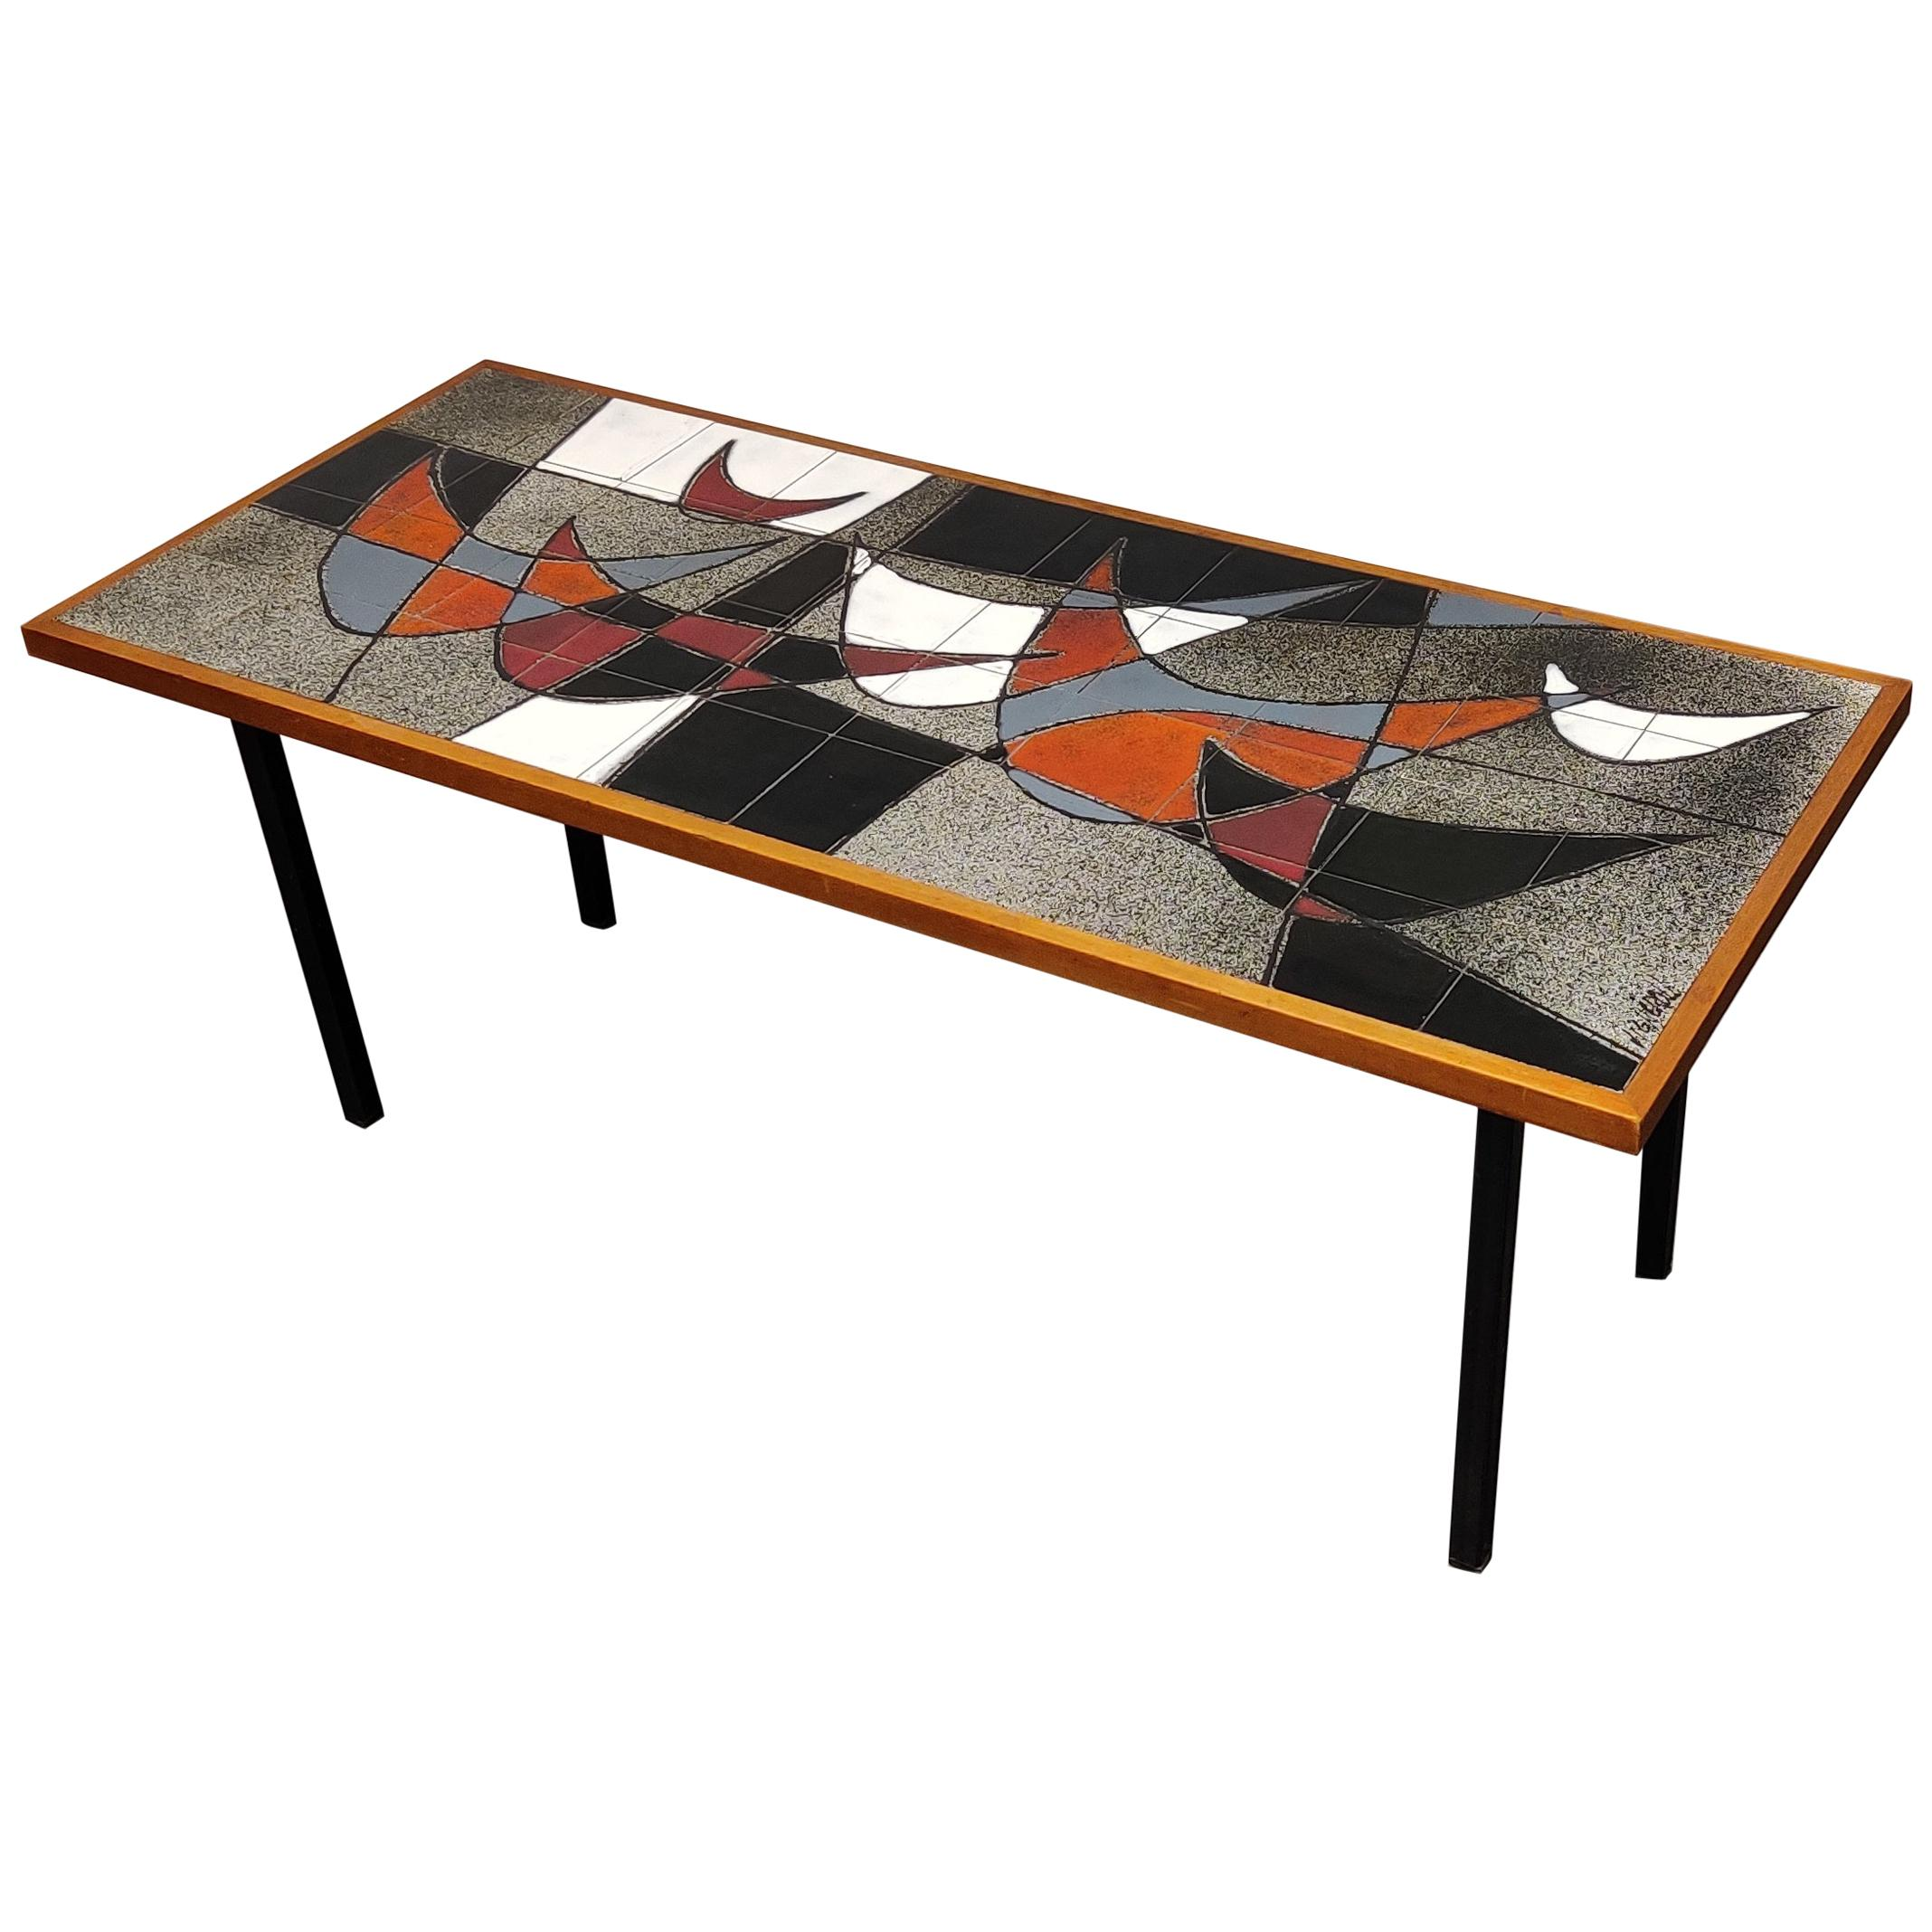 Midcentury Ceramic Coffee Table by Vigneron, 1960s